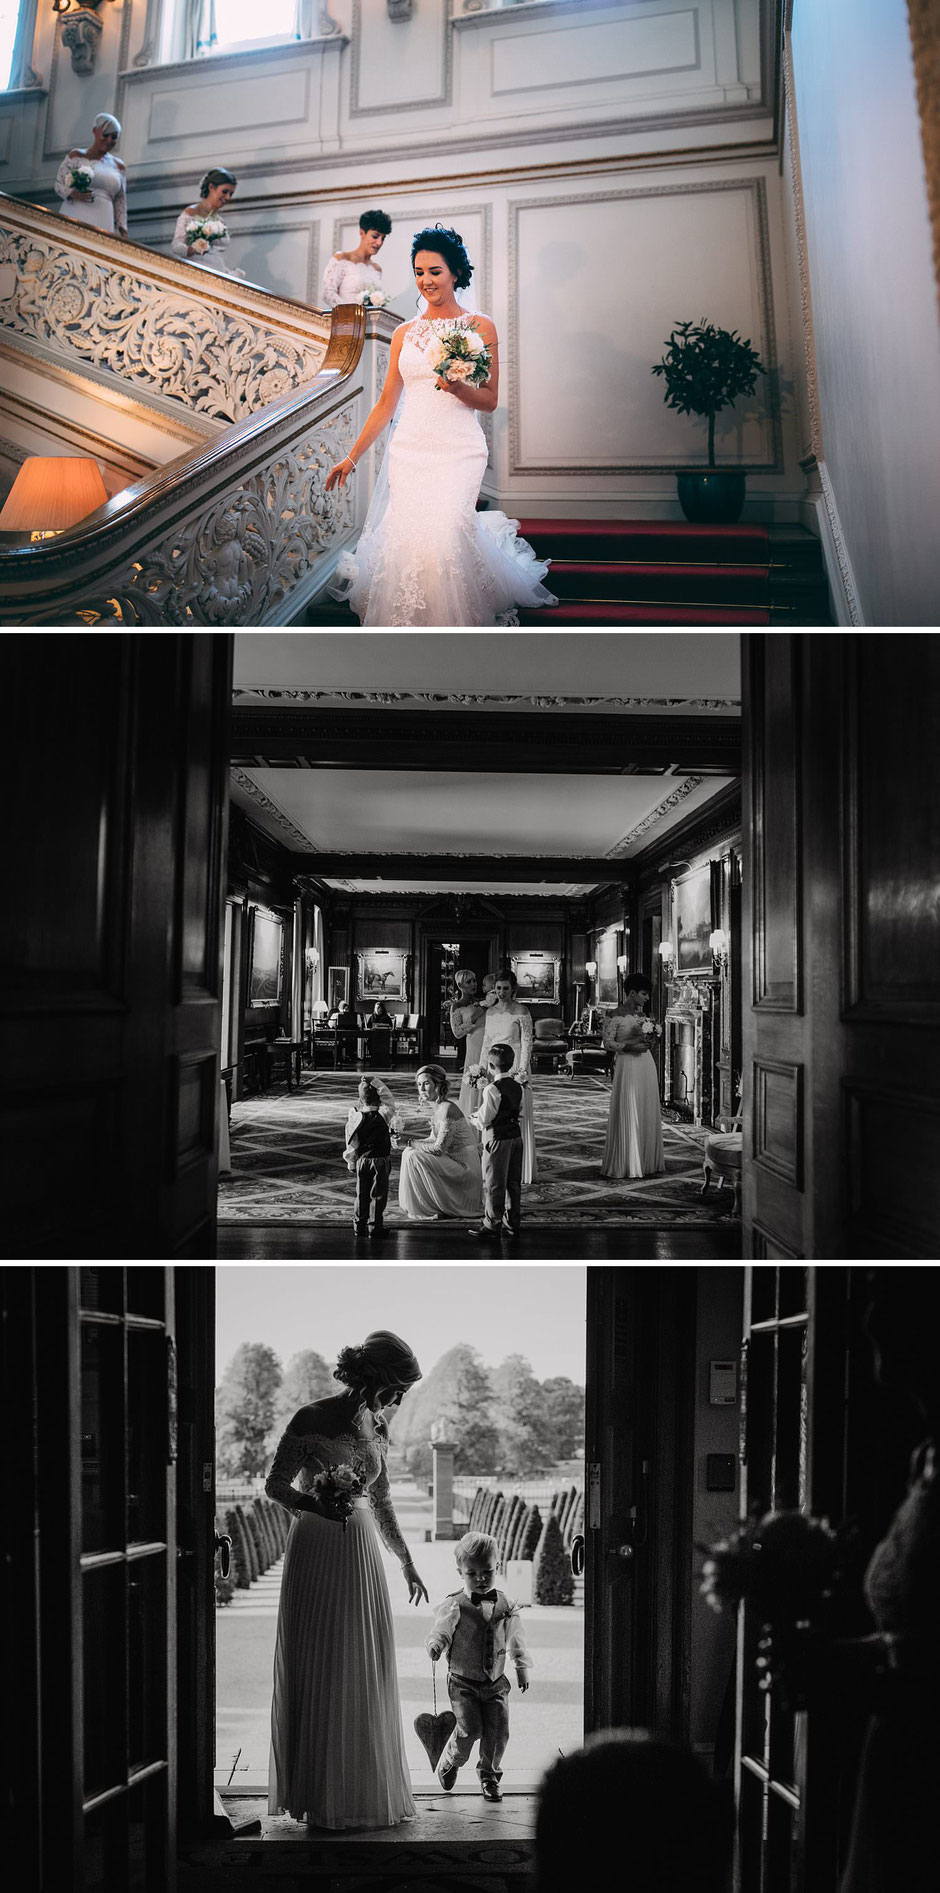 candid photographs of a bride and her bridesmaids walking to the wedding ceremony at Knowsley hall